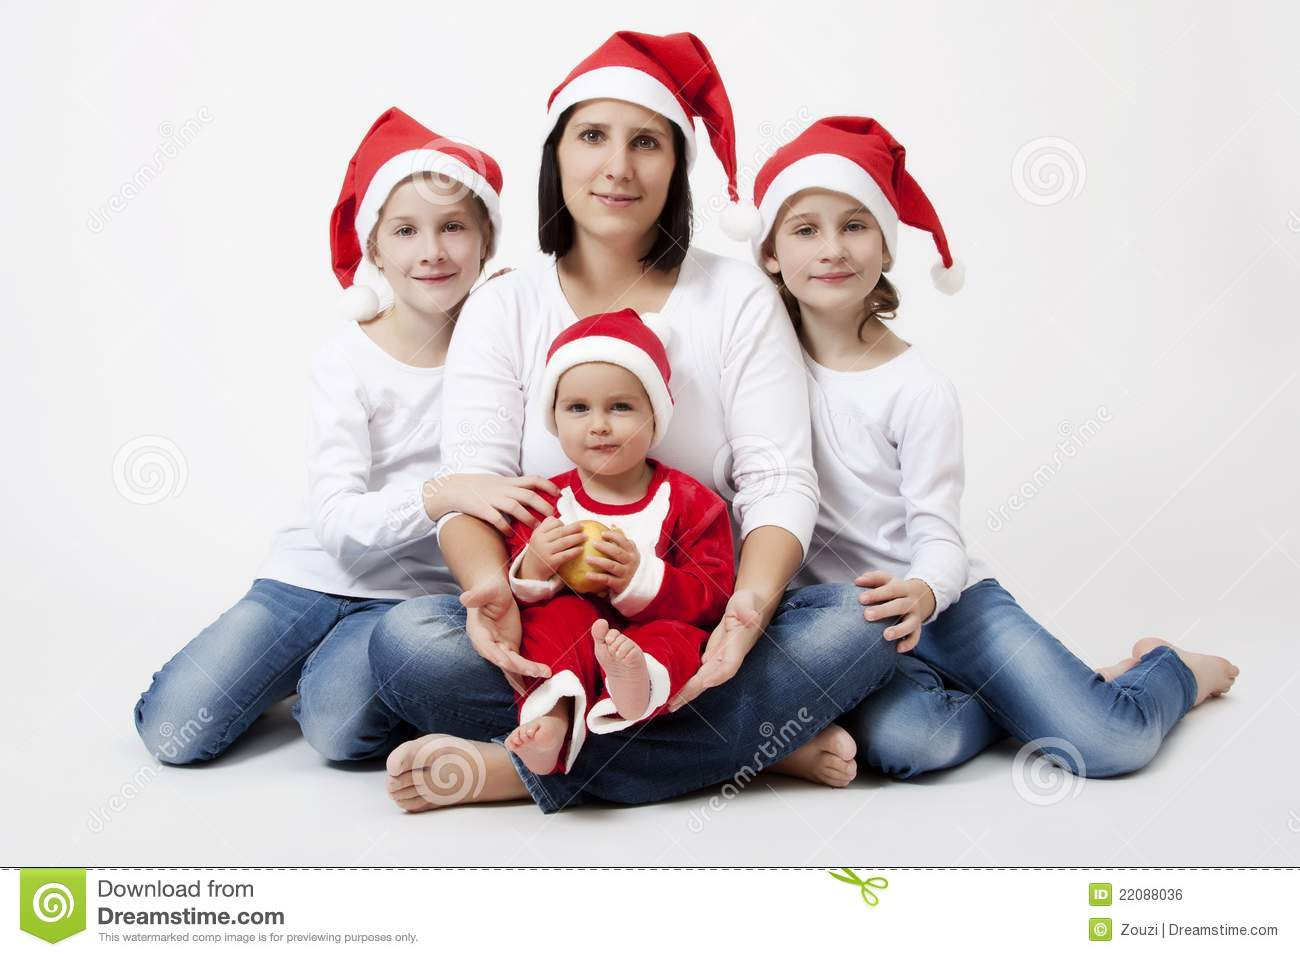 Christmas Family Portraits.Christmas Family Portrait Stock Photo Image Of Female